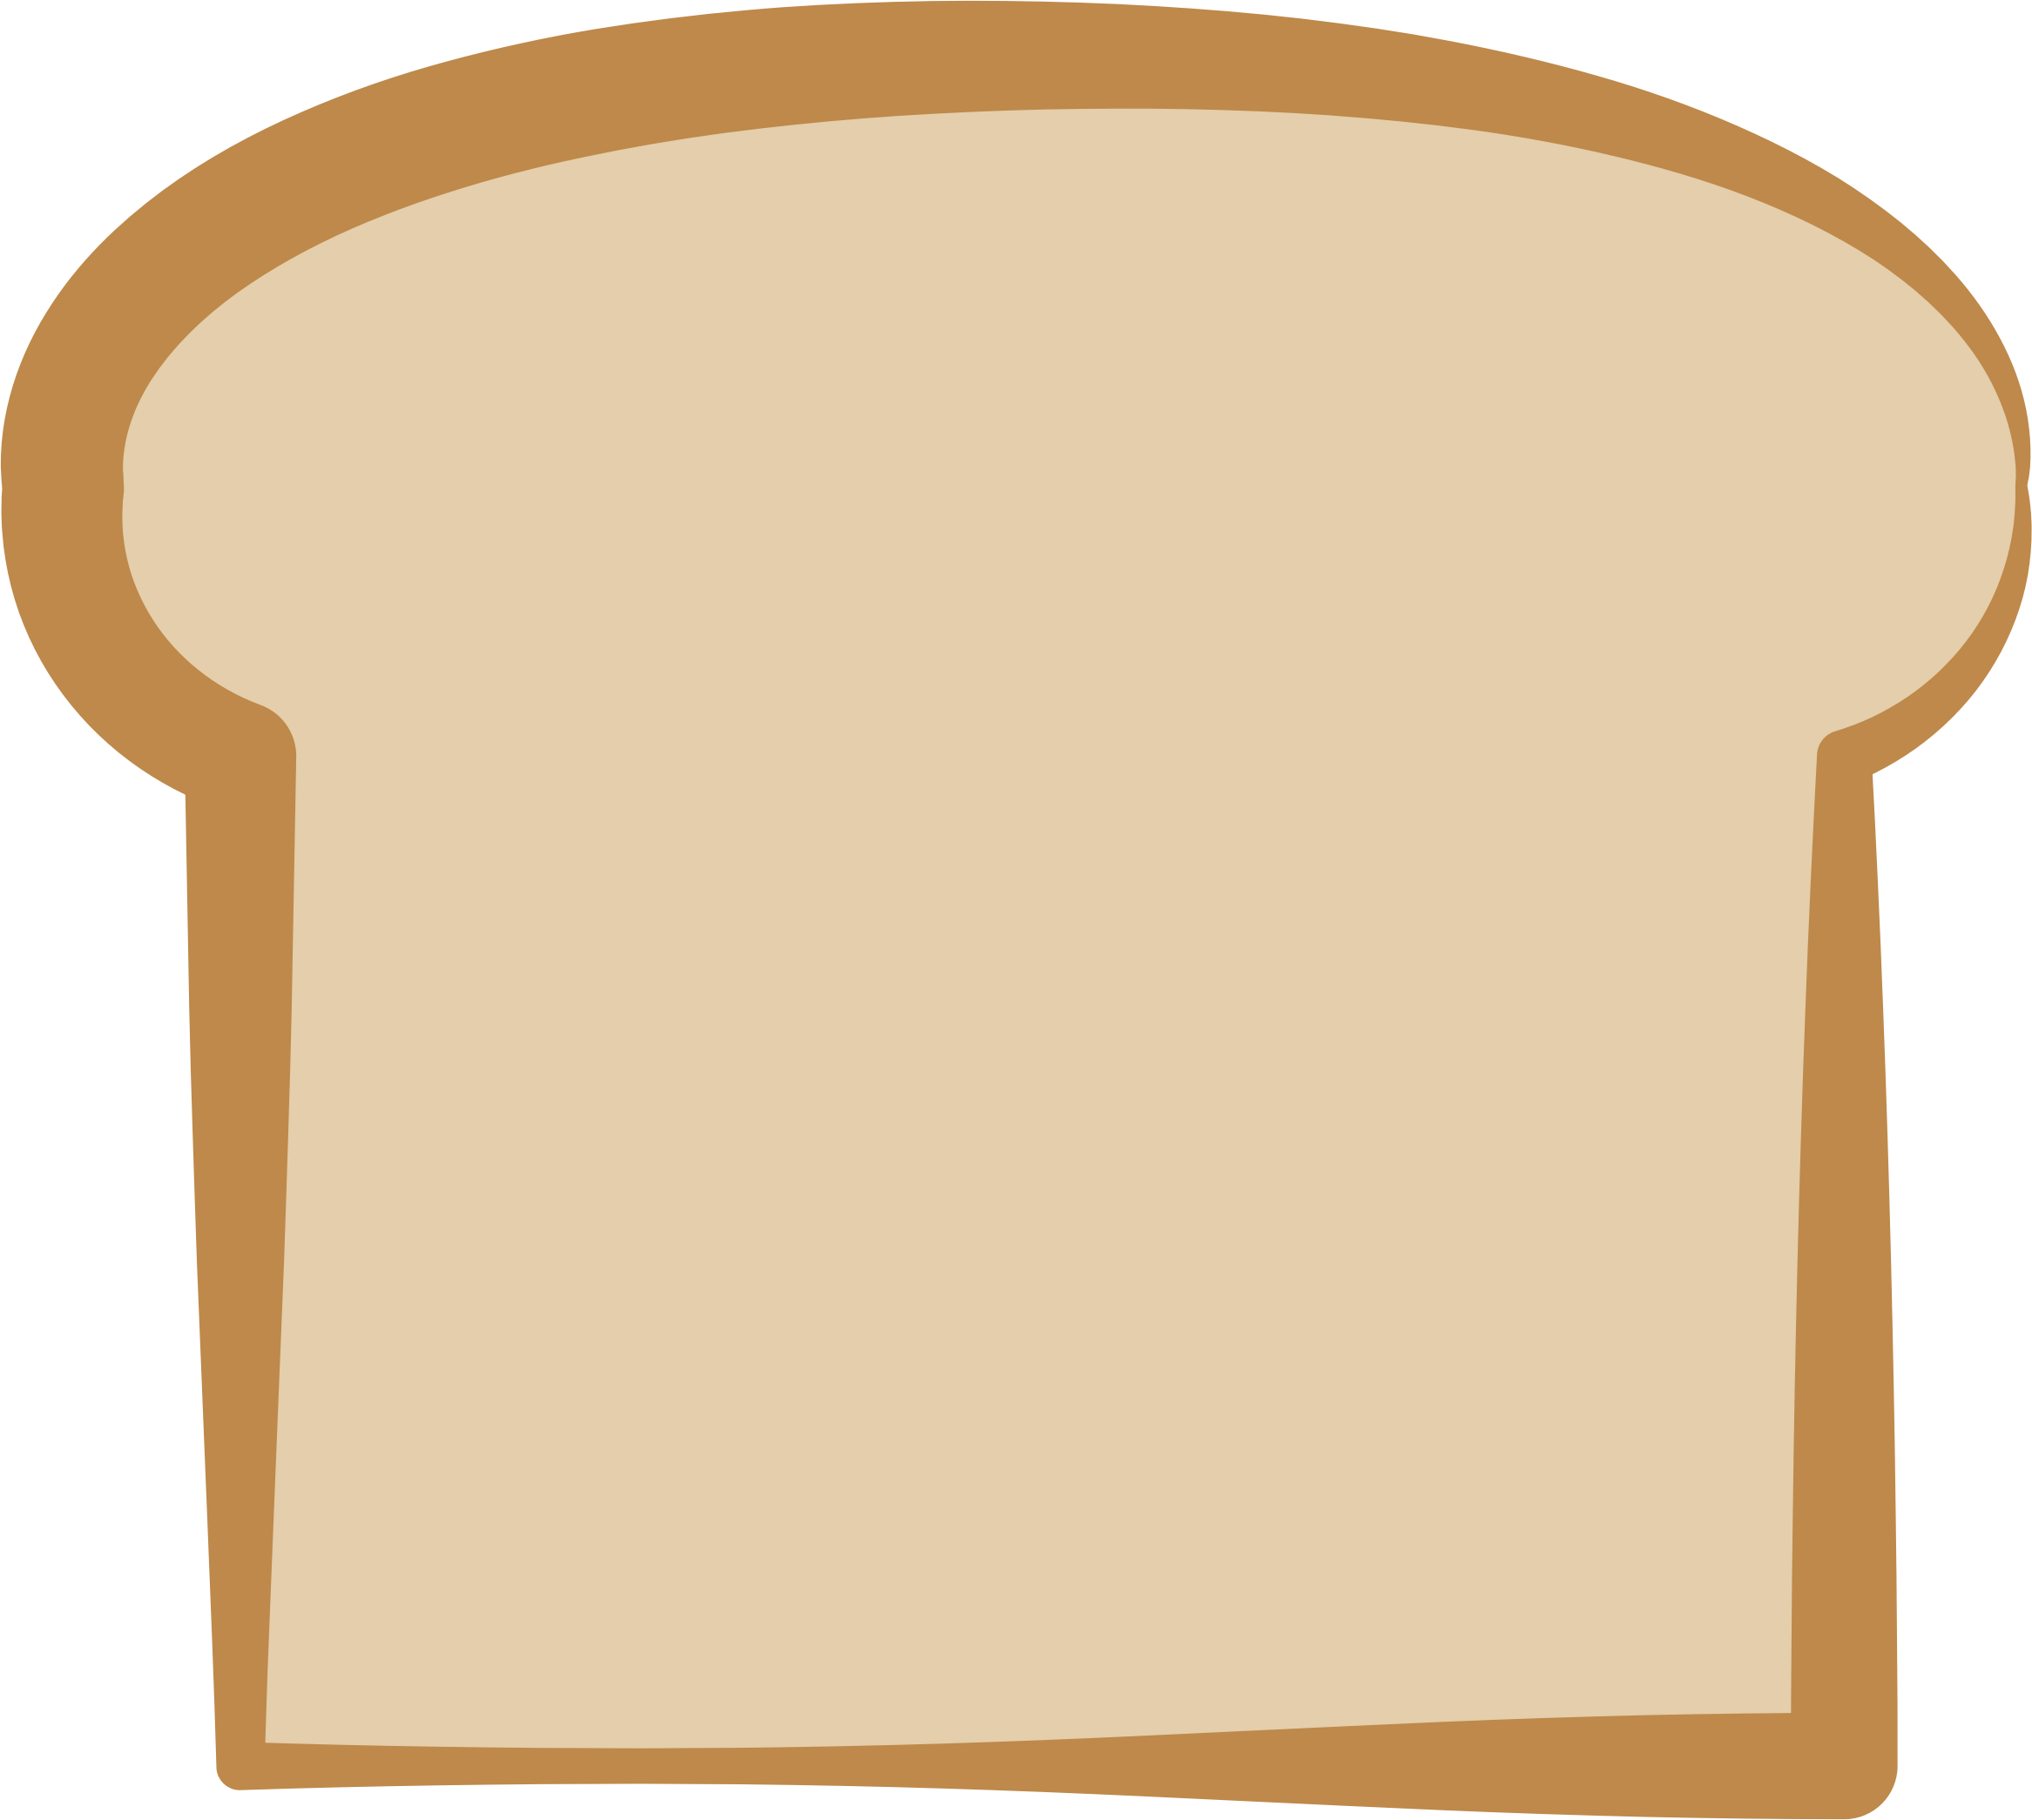 picture free library Bread big image png. Toaster clipart transparent background